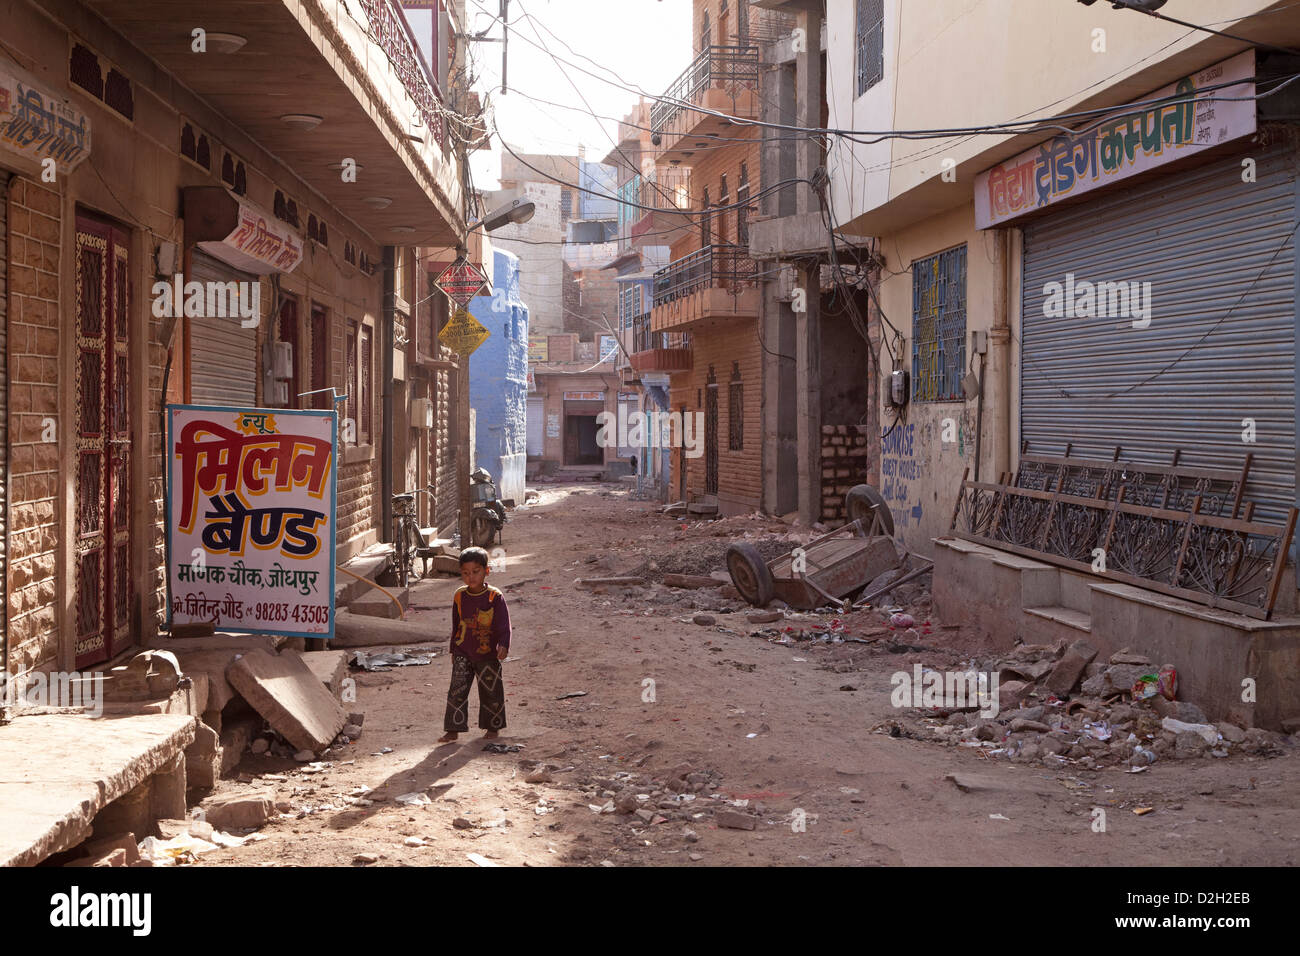 India, Rajasthan, Jodhpur, young boy in dilapidated street - Stock Image